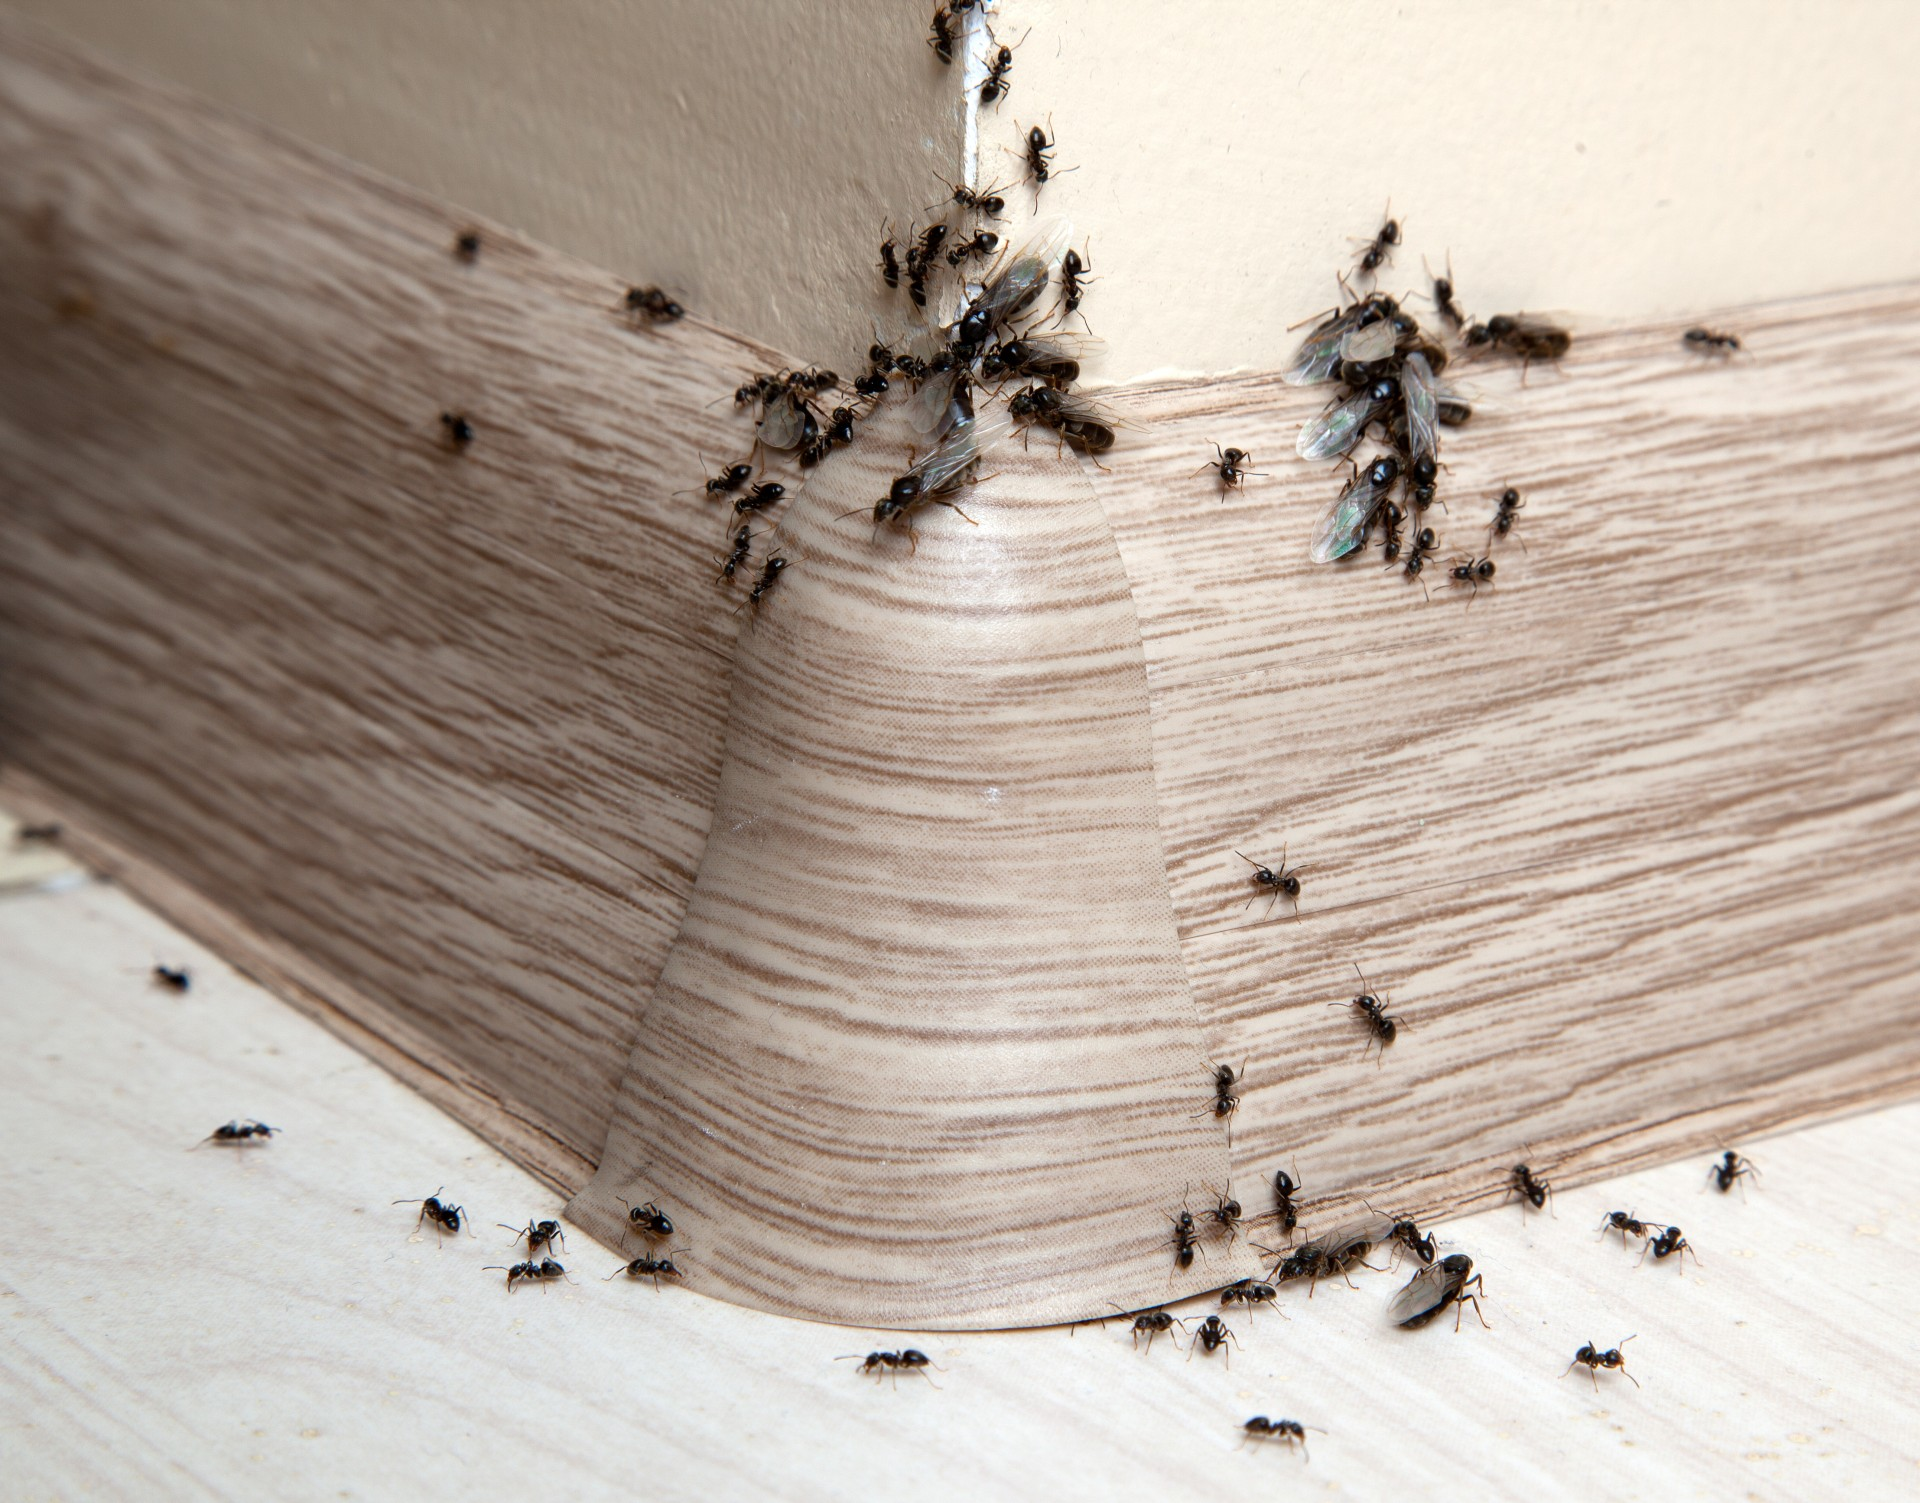 Ant Infestation, Pest Control in Chertsey, Ottershaw, Longcross, KT16. Call Now 020 8166 9746